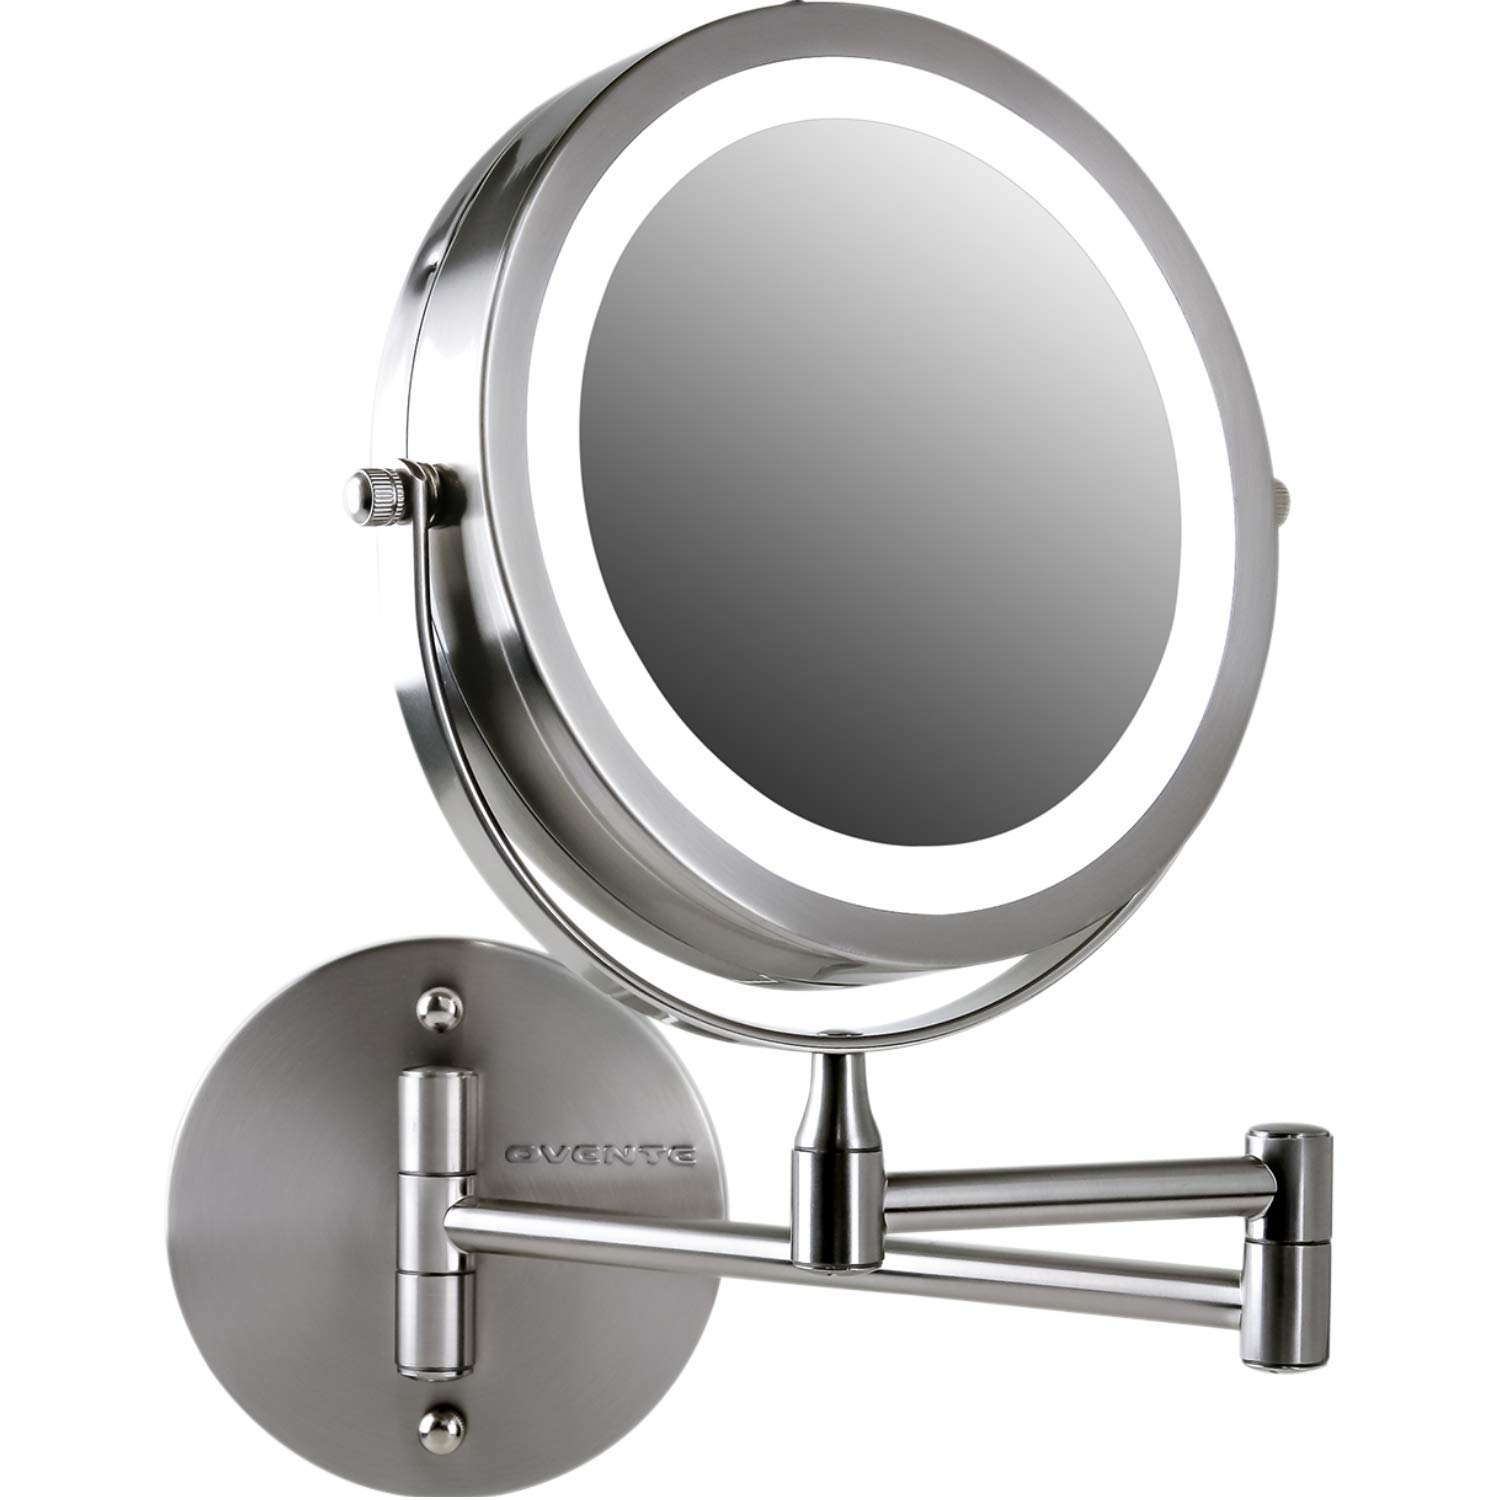 Ovente Wall Mount LED Lighted Makeup Mirror, Battery Operated, 1x/10x Magnification, 7'', Nickel Brushed (MFW70BR1x10x) by Ovente